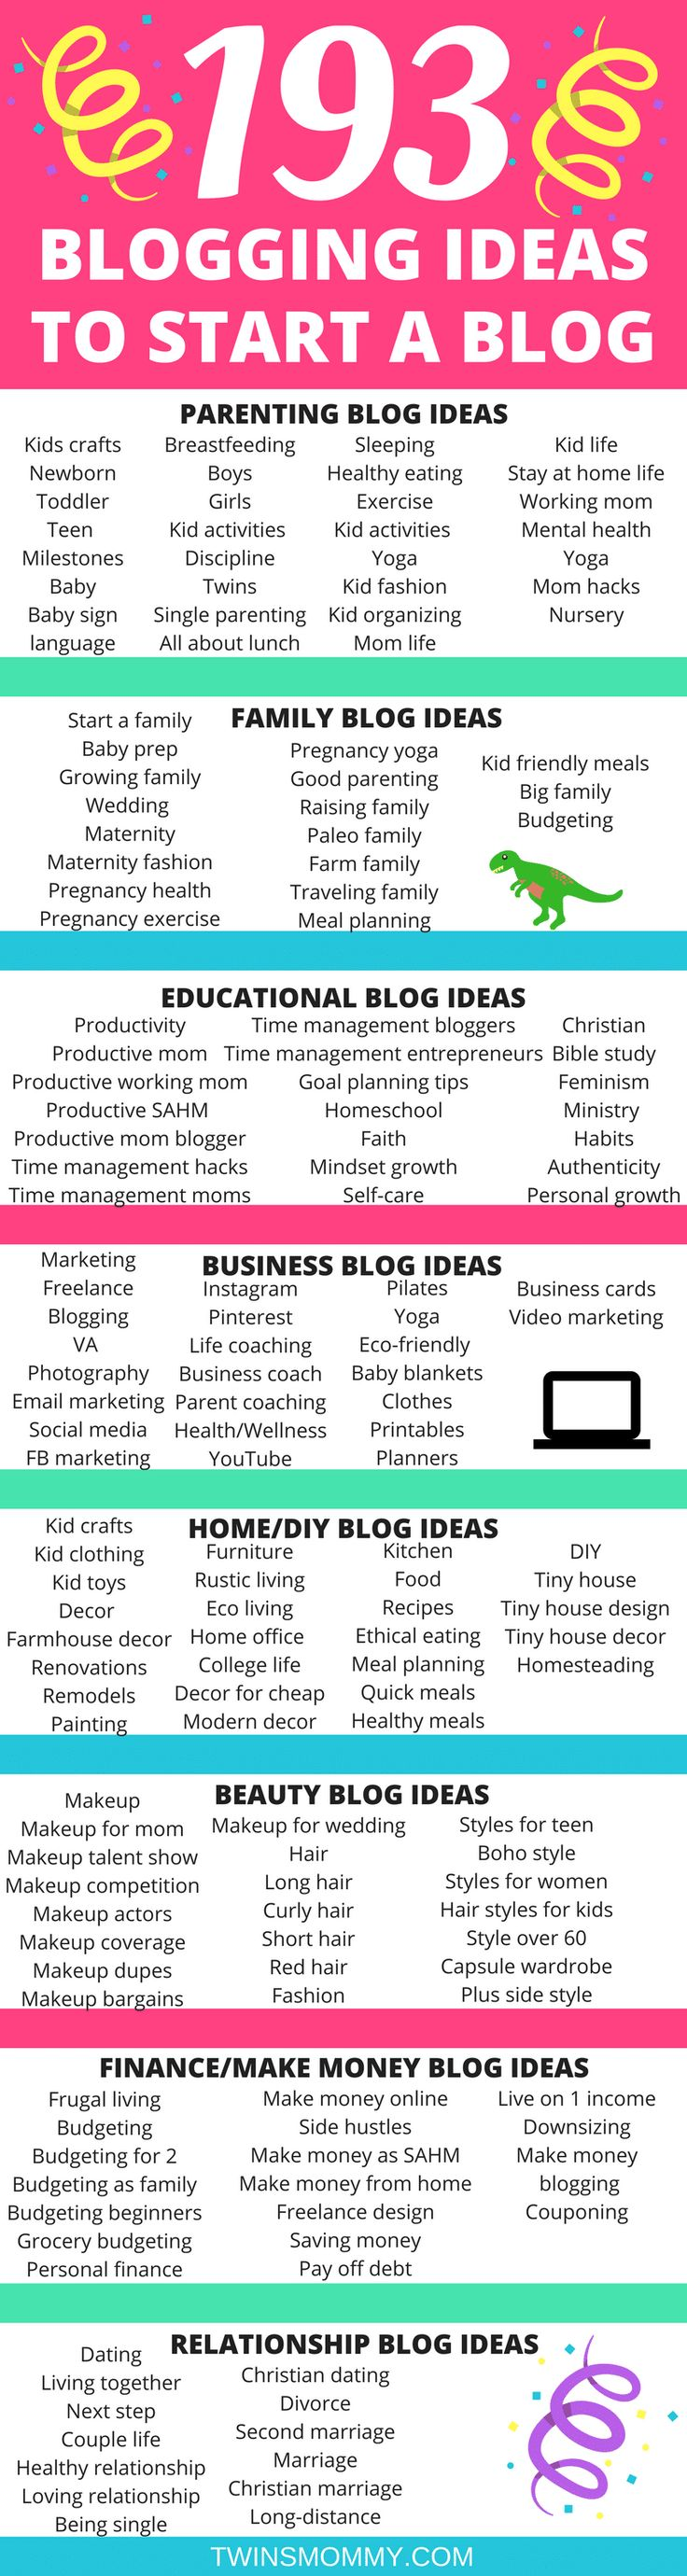 26614 best Business | The Best Of images on Pinterest | Business ...